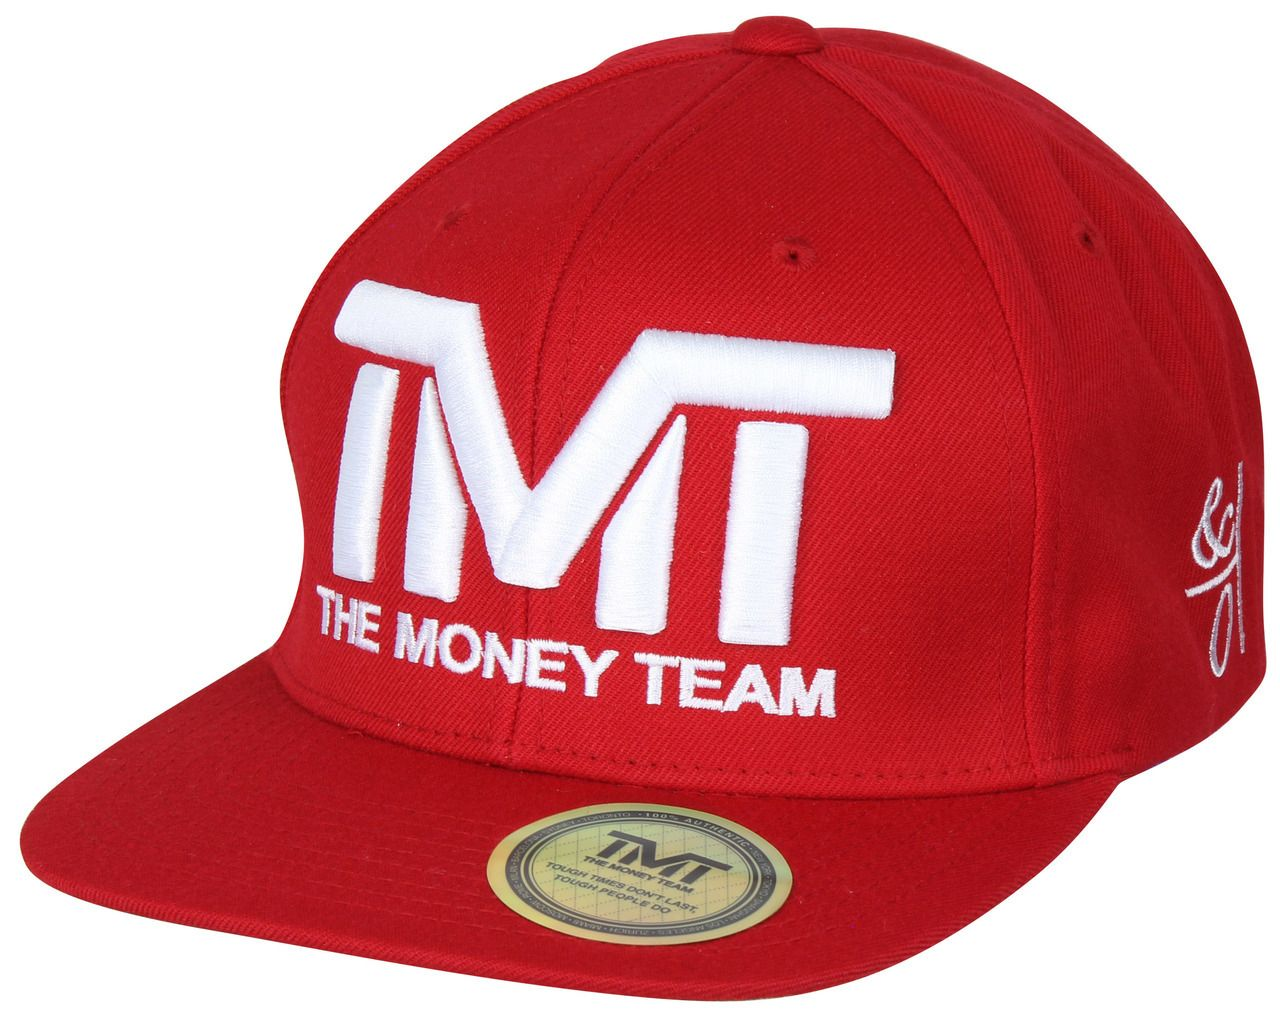 The Money Team TMT Floyd Mayweather Courtside Snapback Hat (Red White) 4abd776a5850